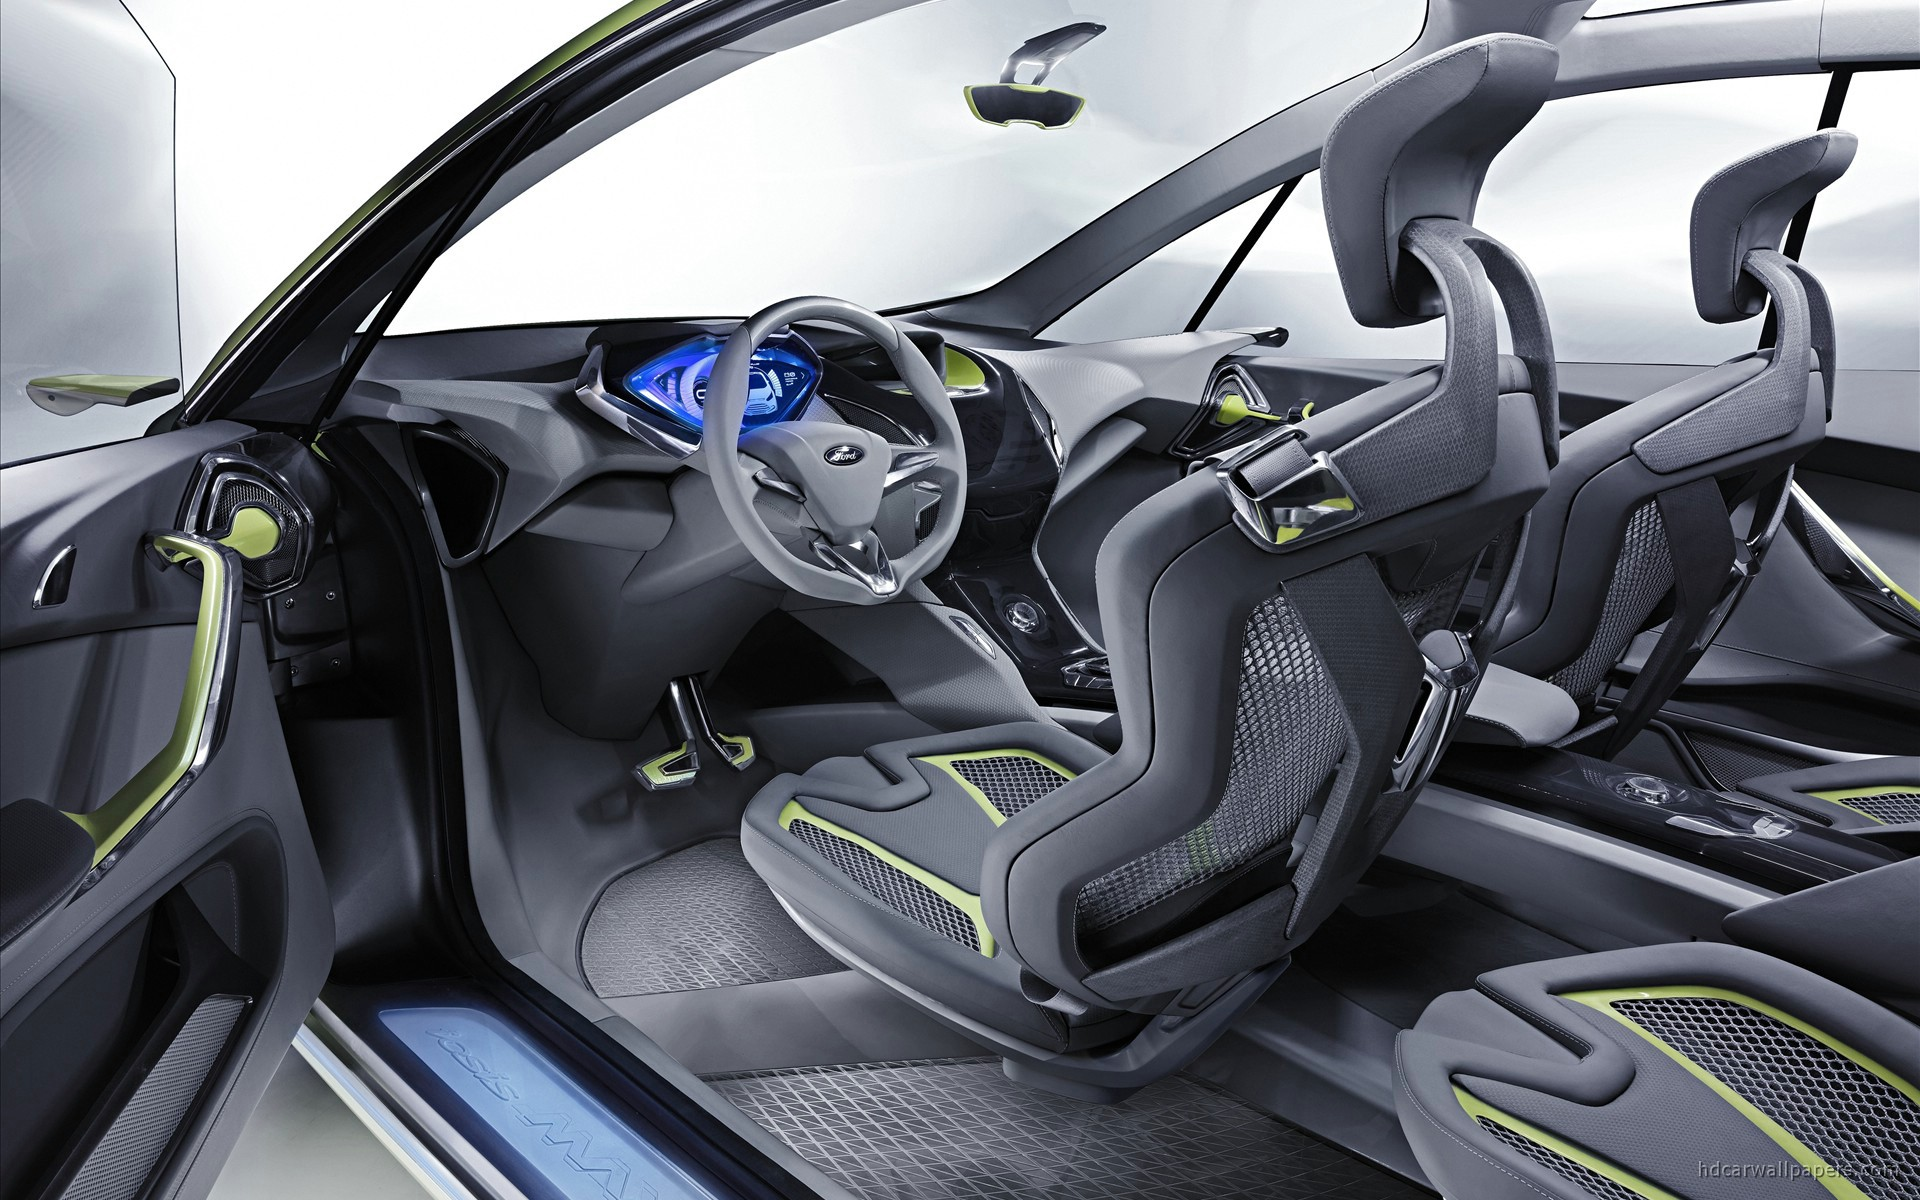 2009 Ford iosis MAX Concept photo - 1